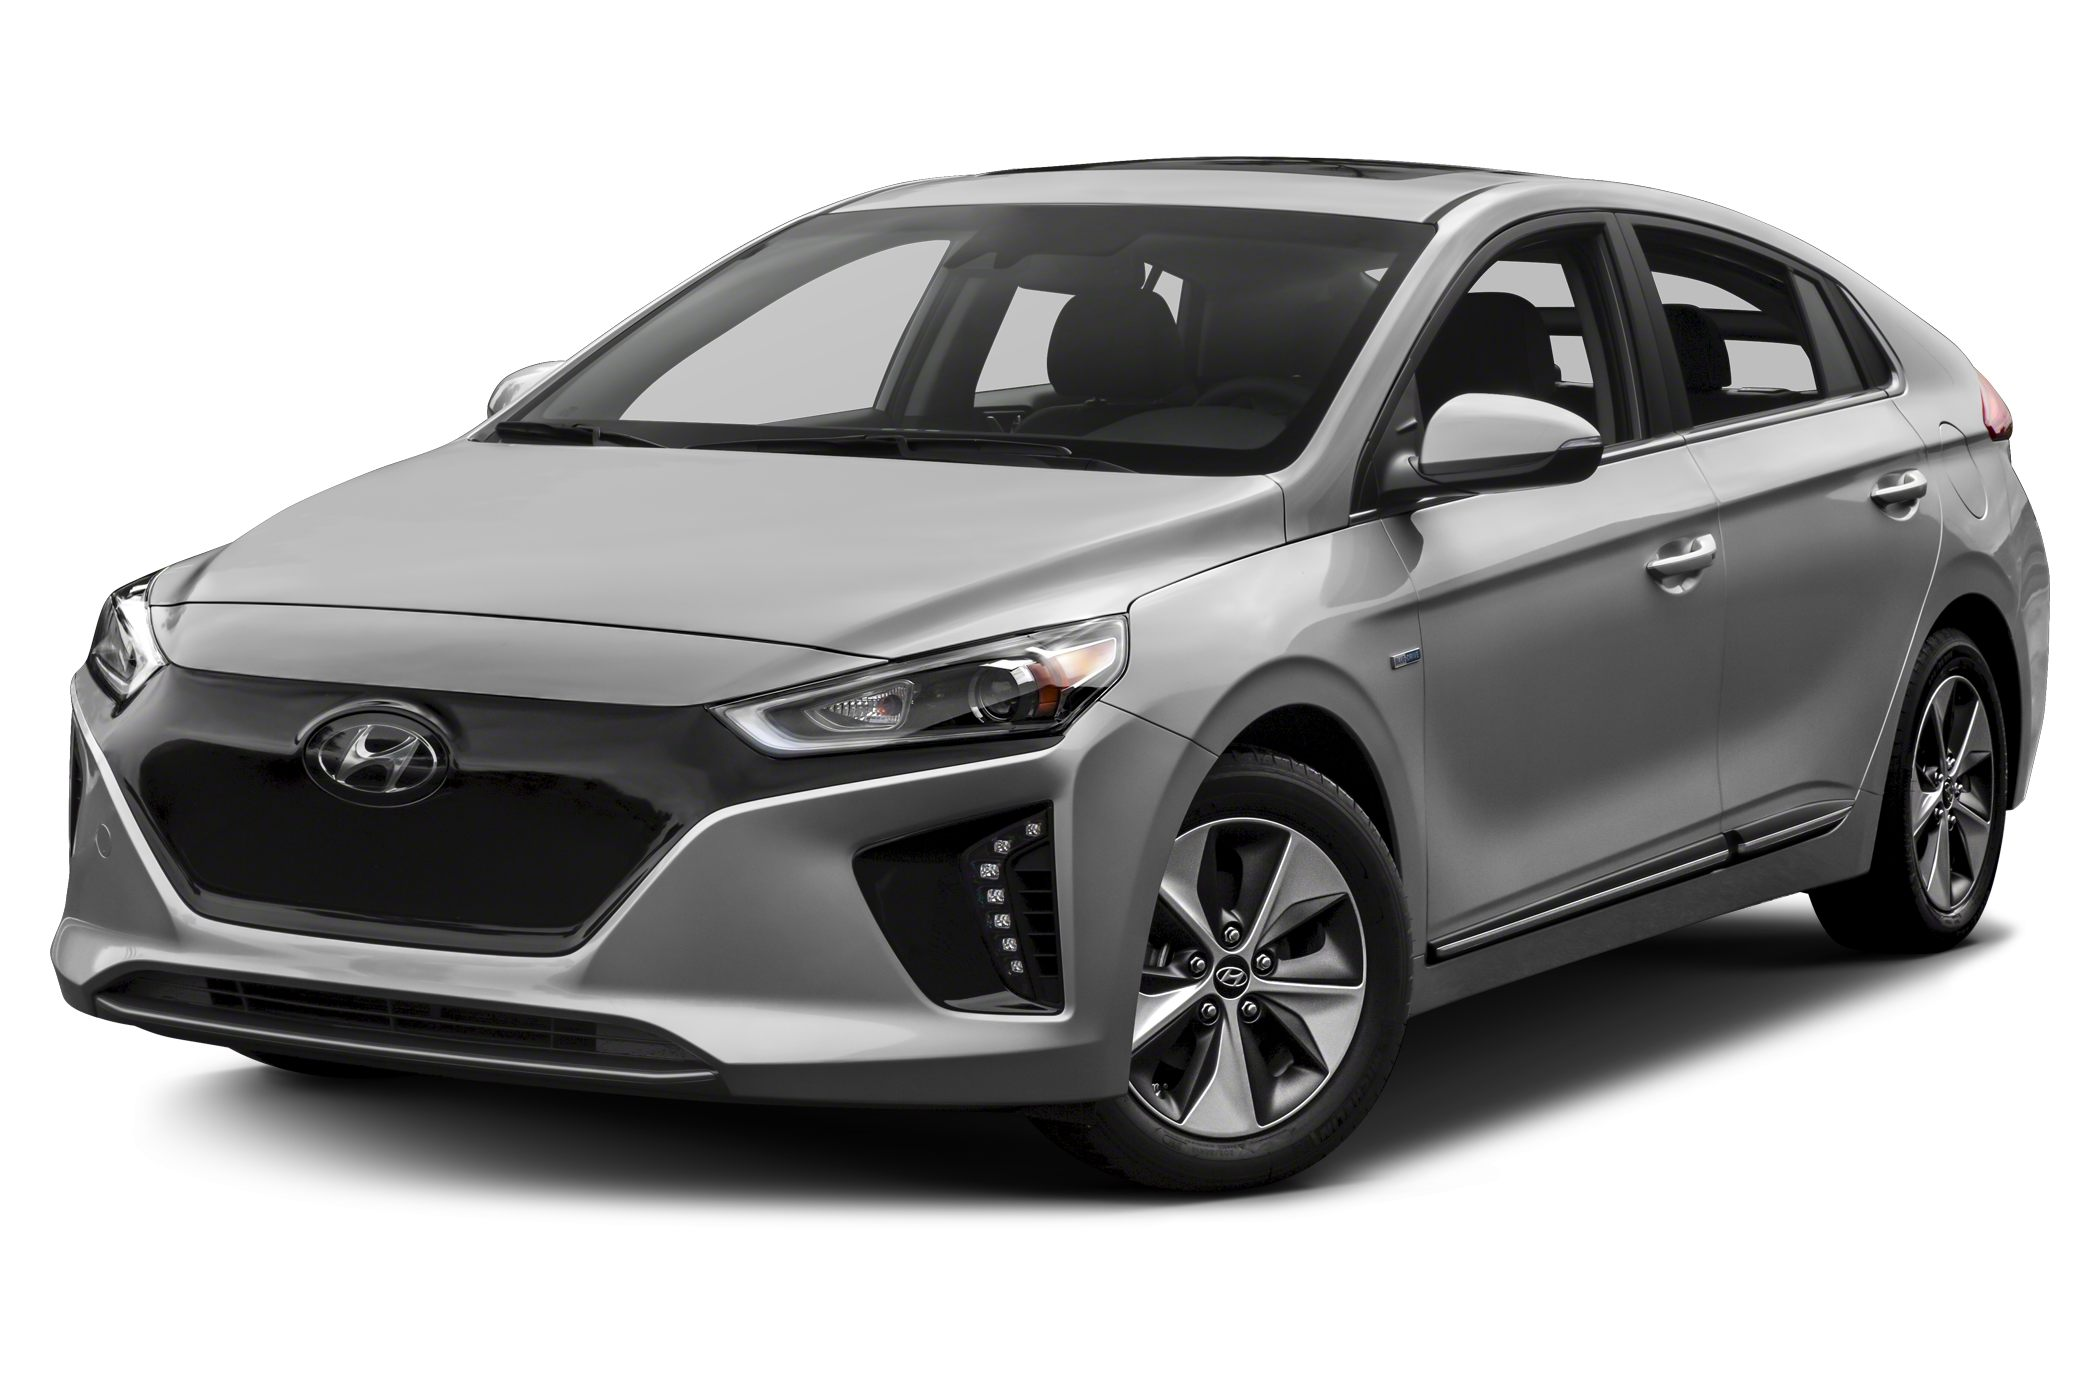 Hyundai Canada Incentives for the new 2019 Hyundai Ioniq EV Fully Electric Vehicle in Milton, Toronto, and the GTA